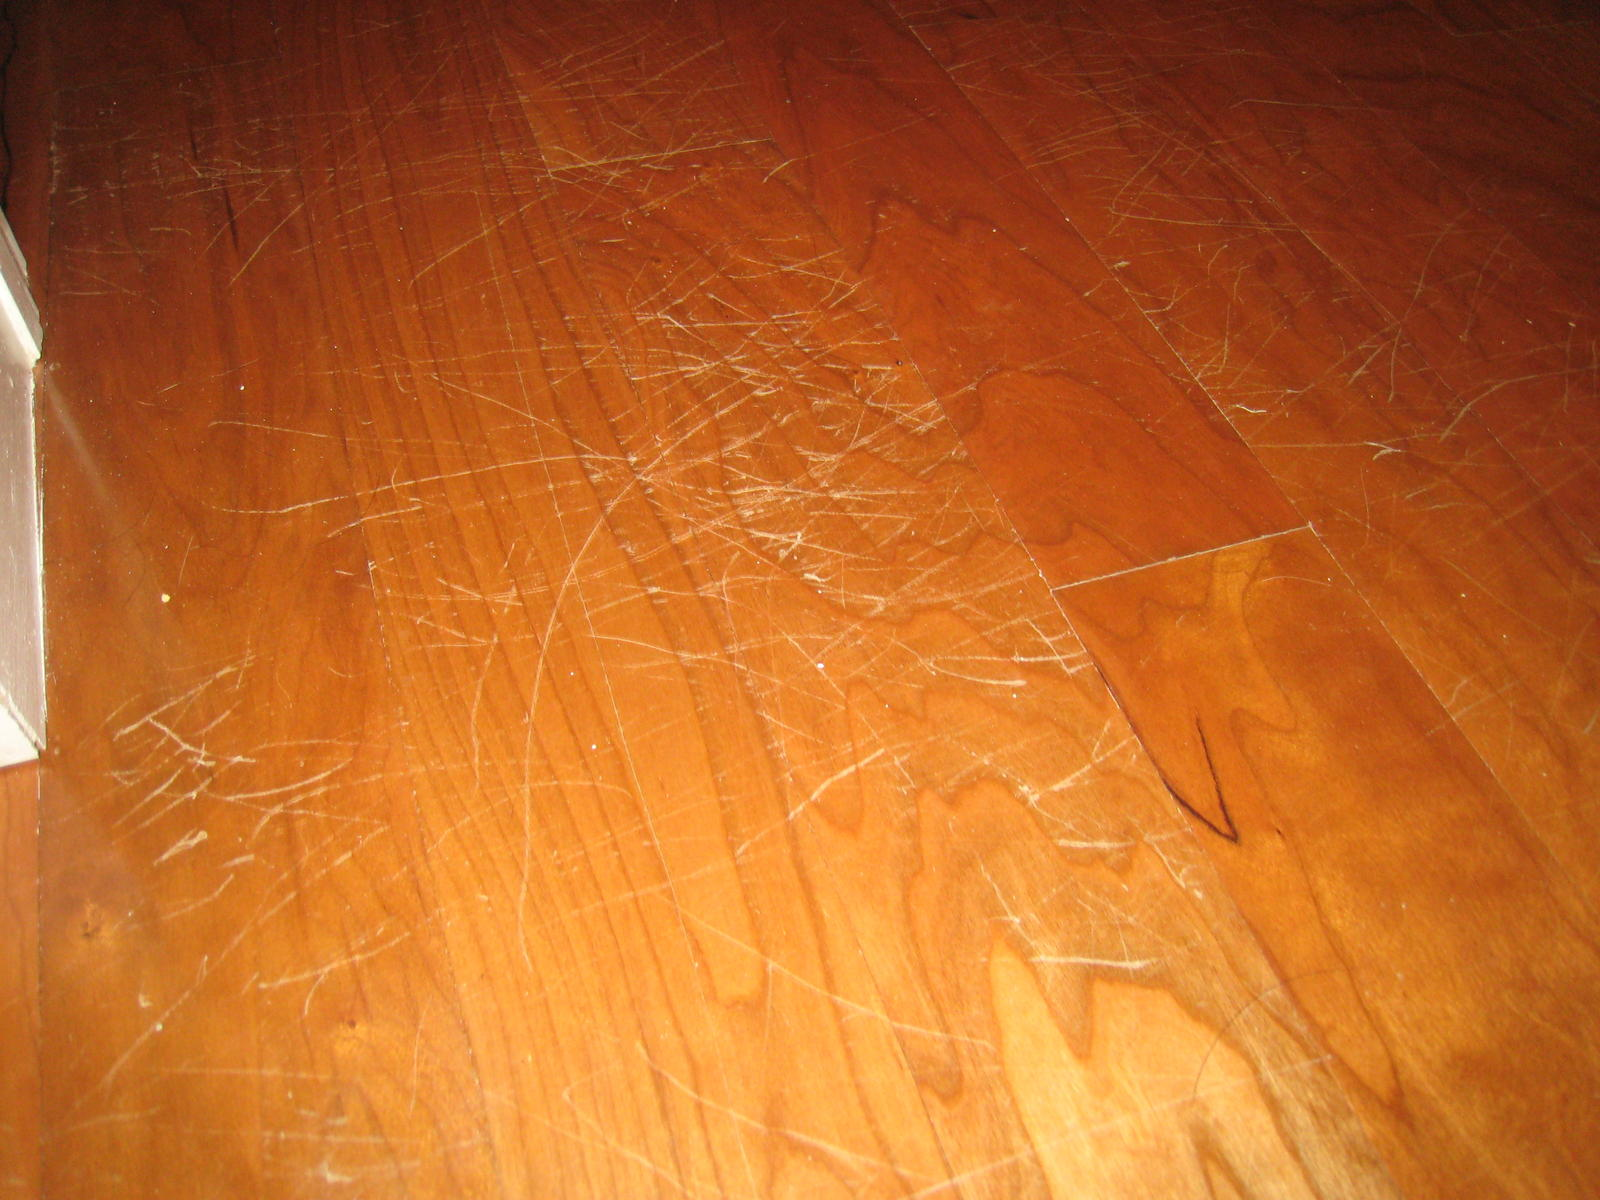 Hardwood Floor Scratch Repair diy fix scratches in wood furniture Hardwood Floors Pets And Scratches Img_1429jpg